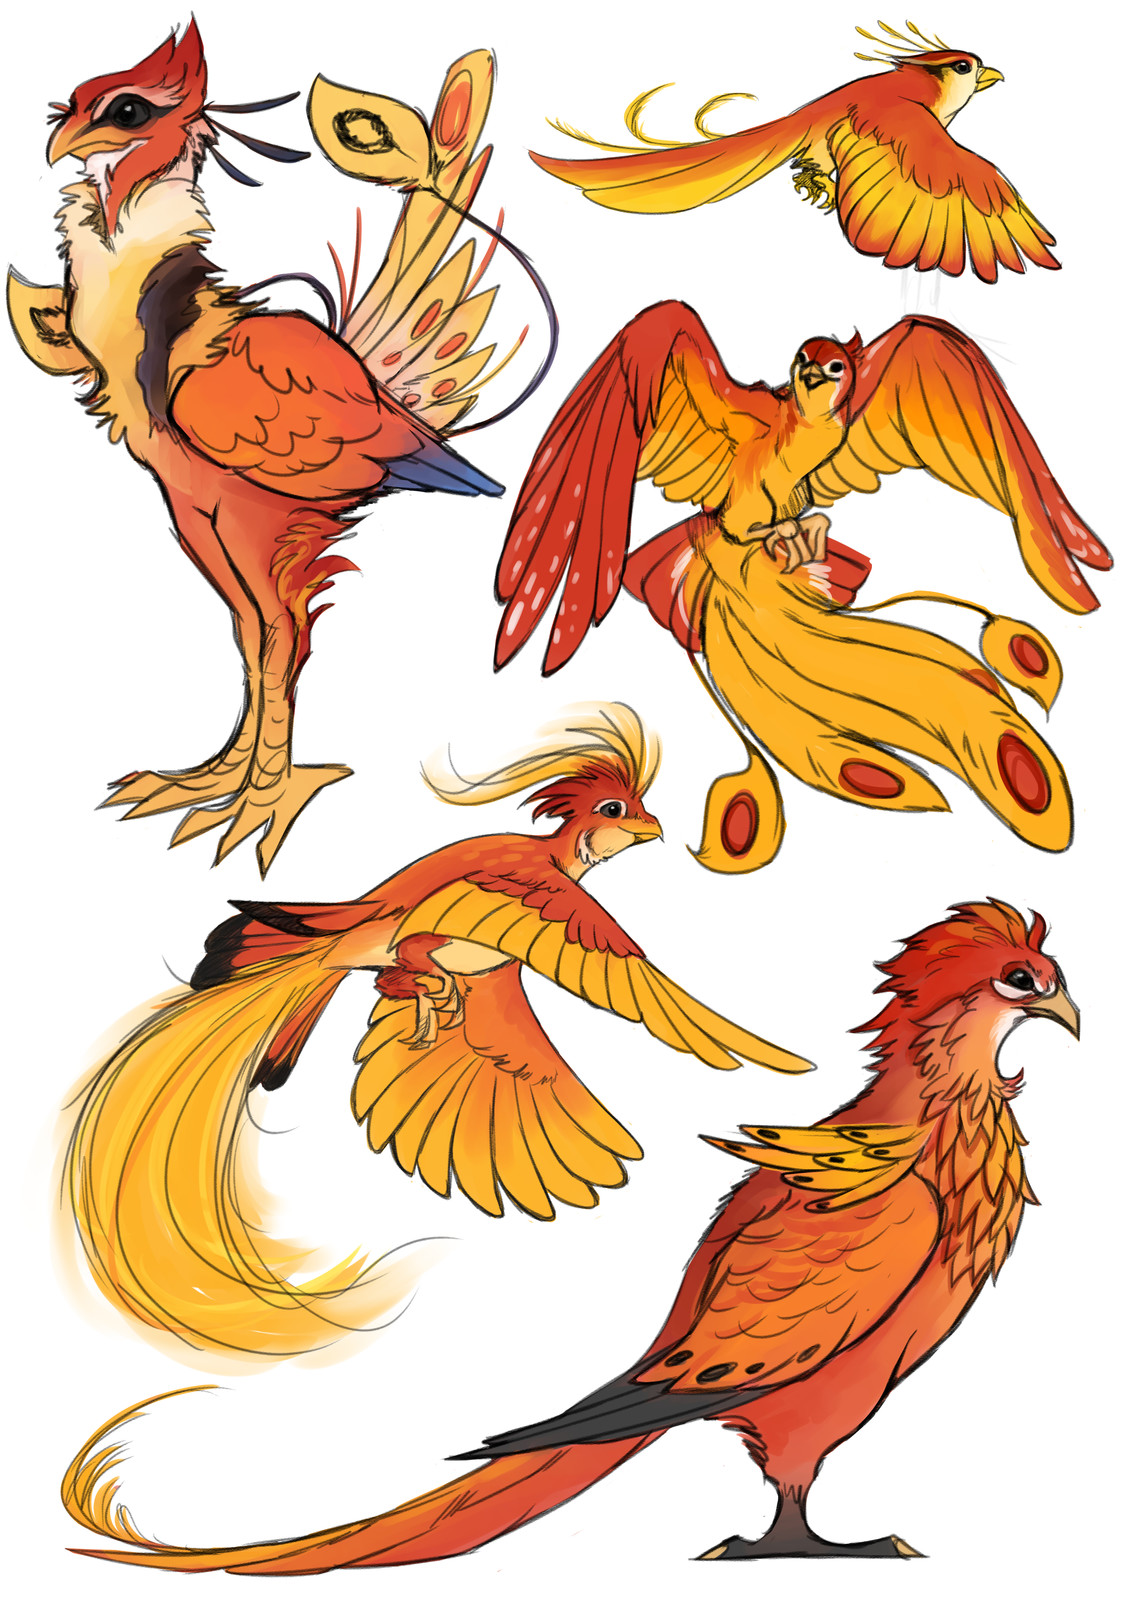 phoenix concept doodles, some heavily referencing photos of actual birds, but with a bunch of elements changed.